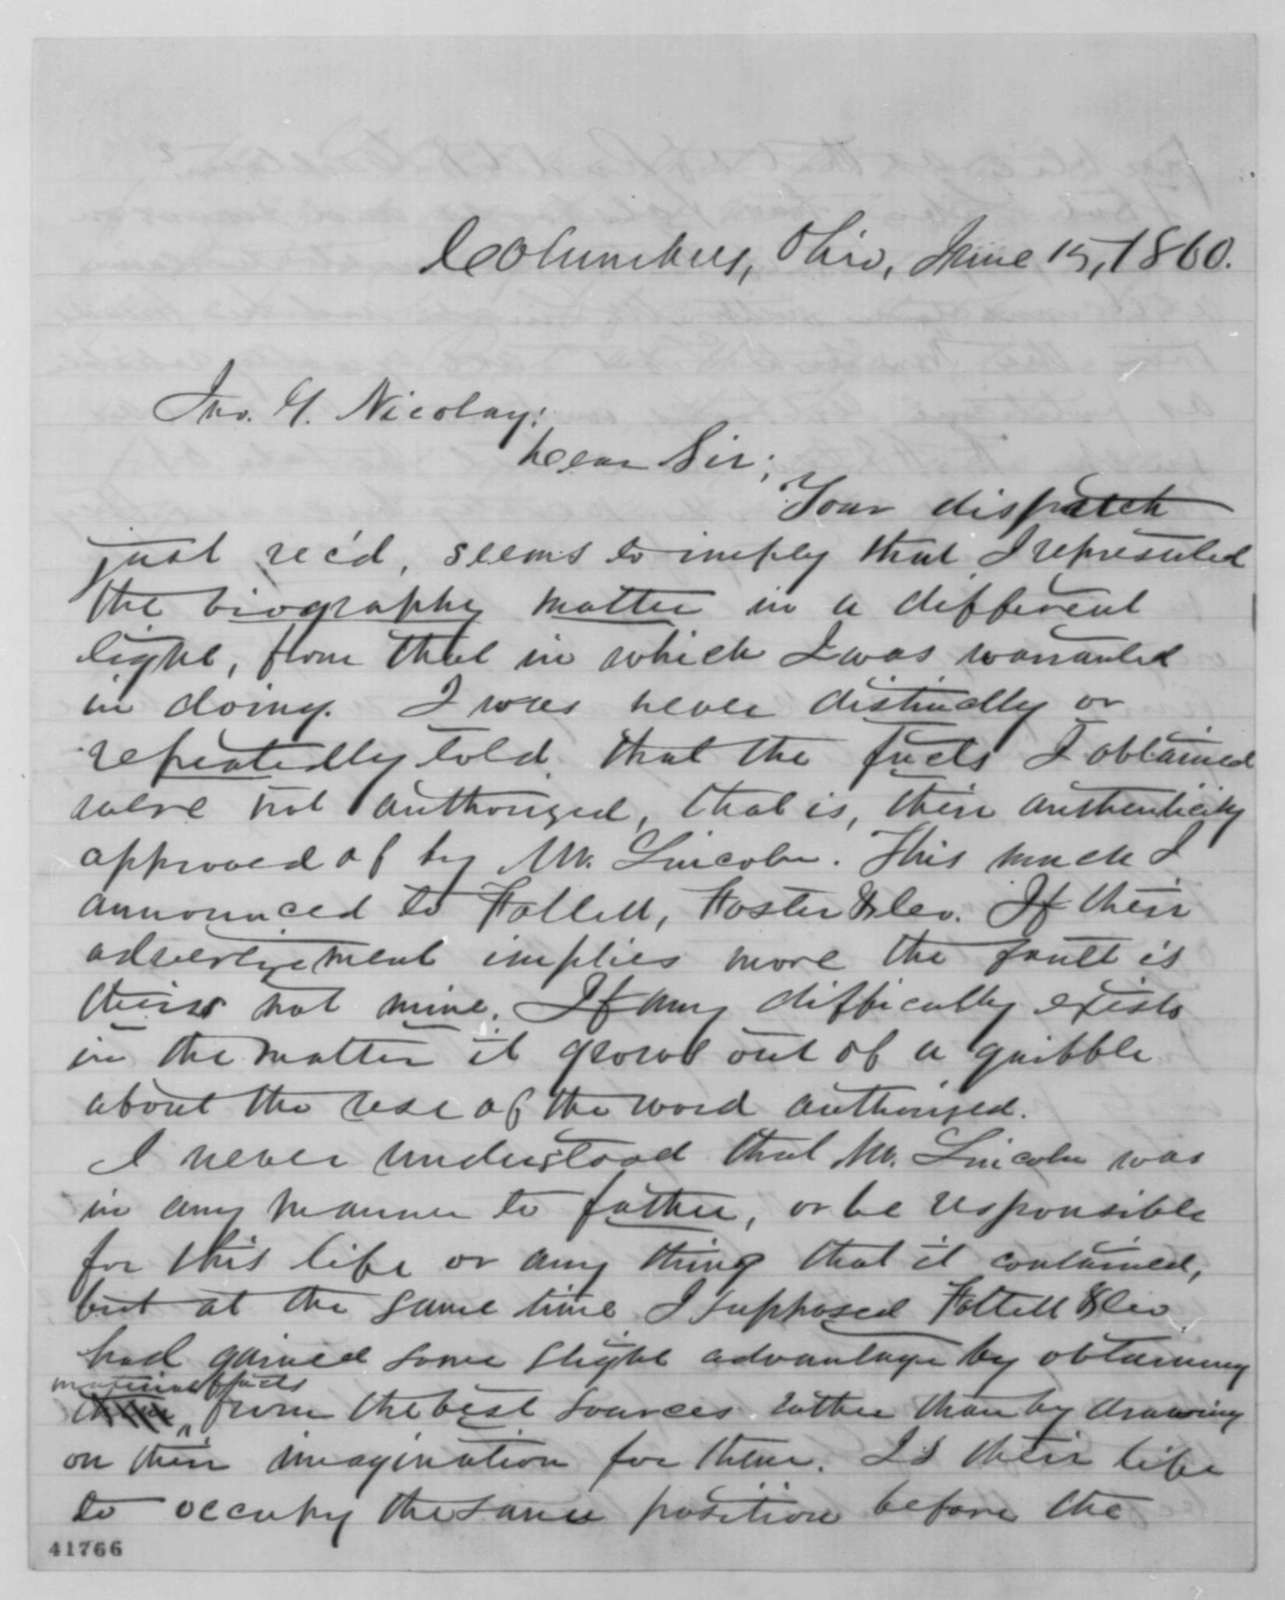 James Q. Howard to John G. Nicolay, Friday, June 15, 1860  (Publication of Lincoln biography)